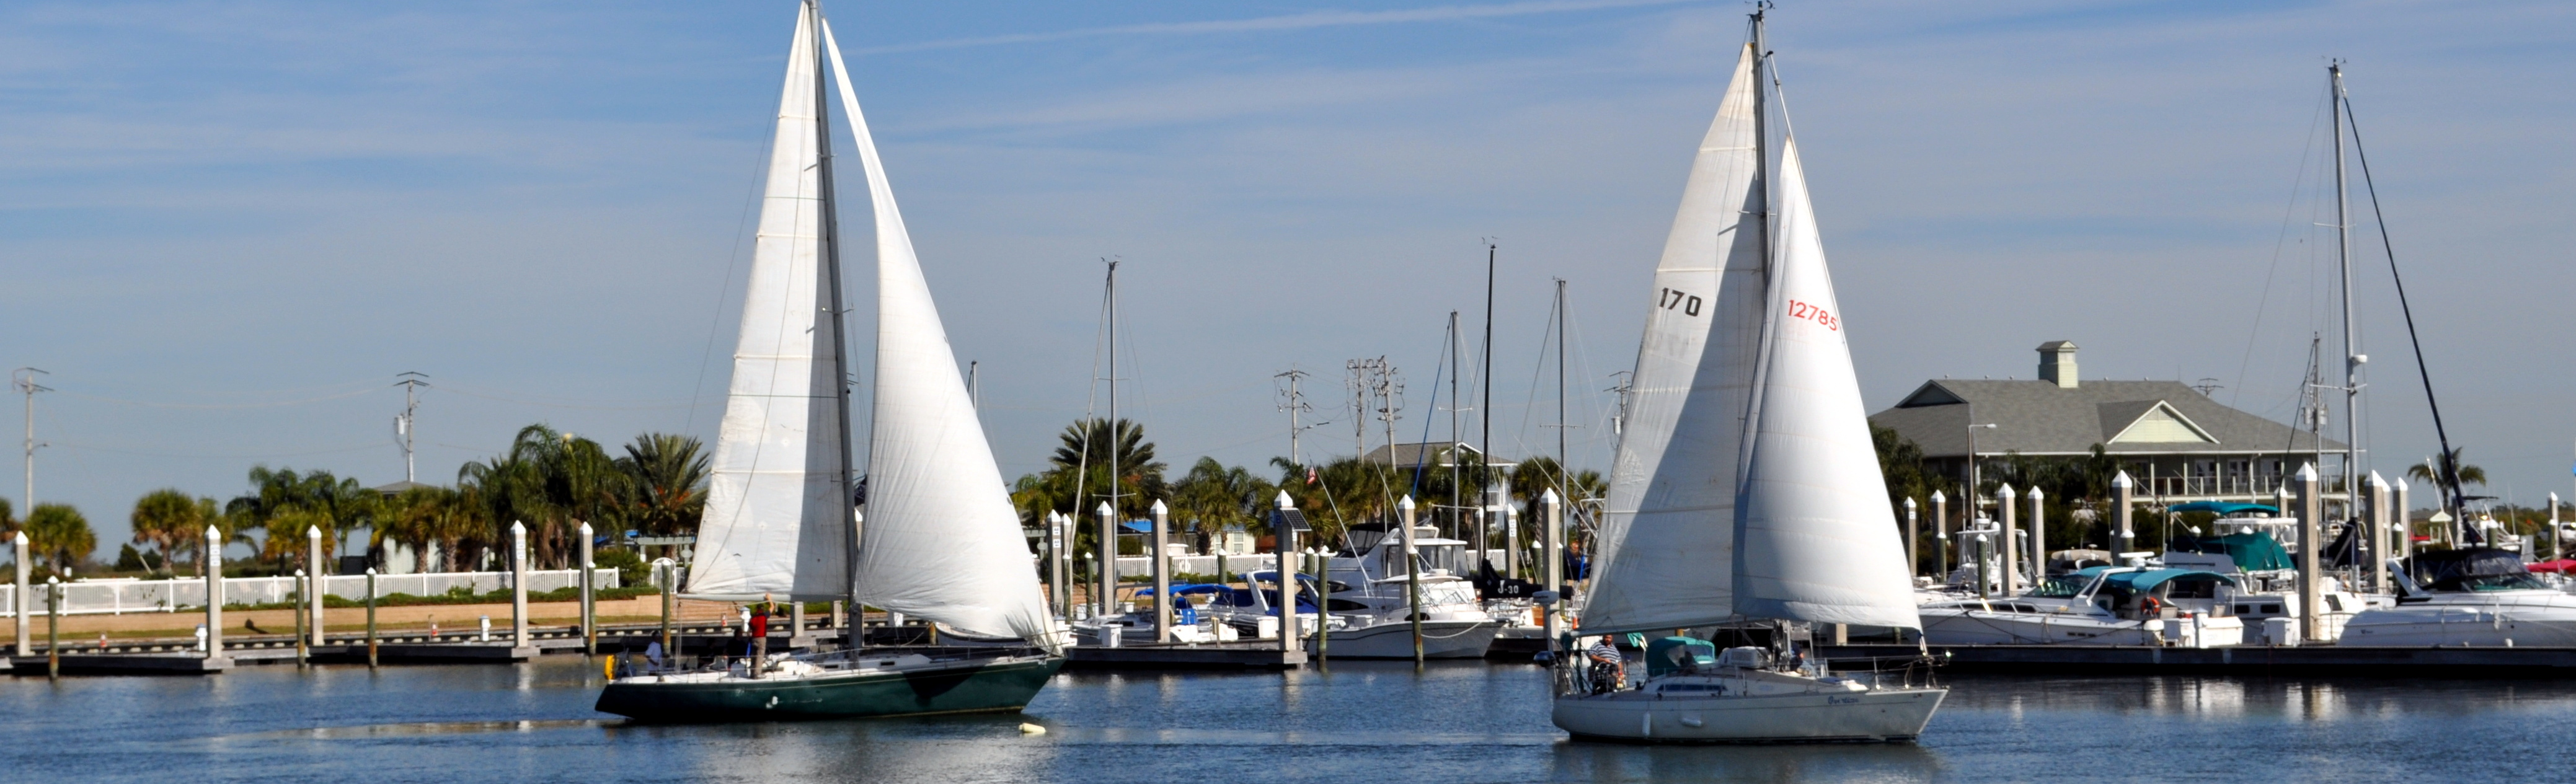 Gulf Coast Texas Marina & Yacht Club